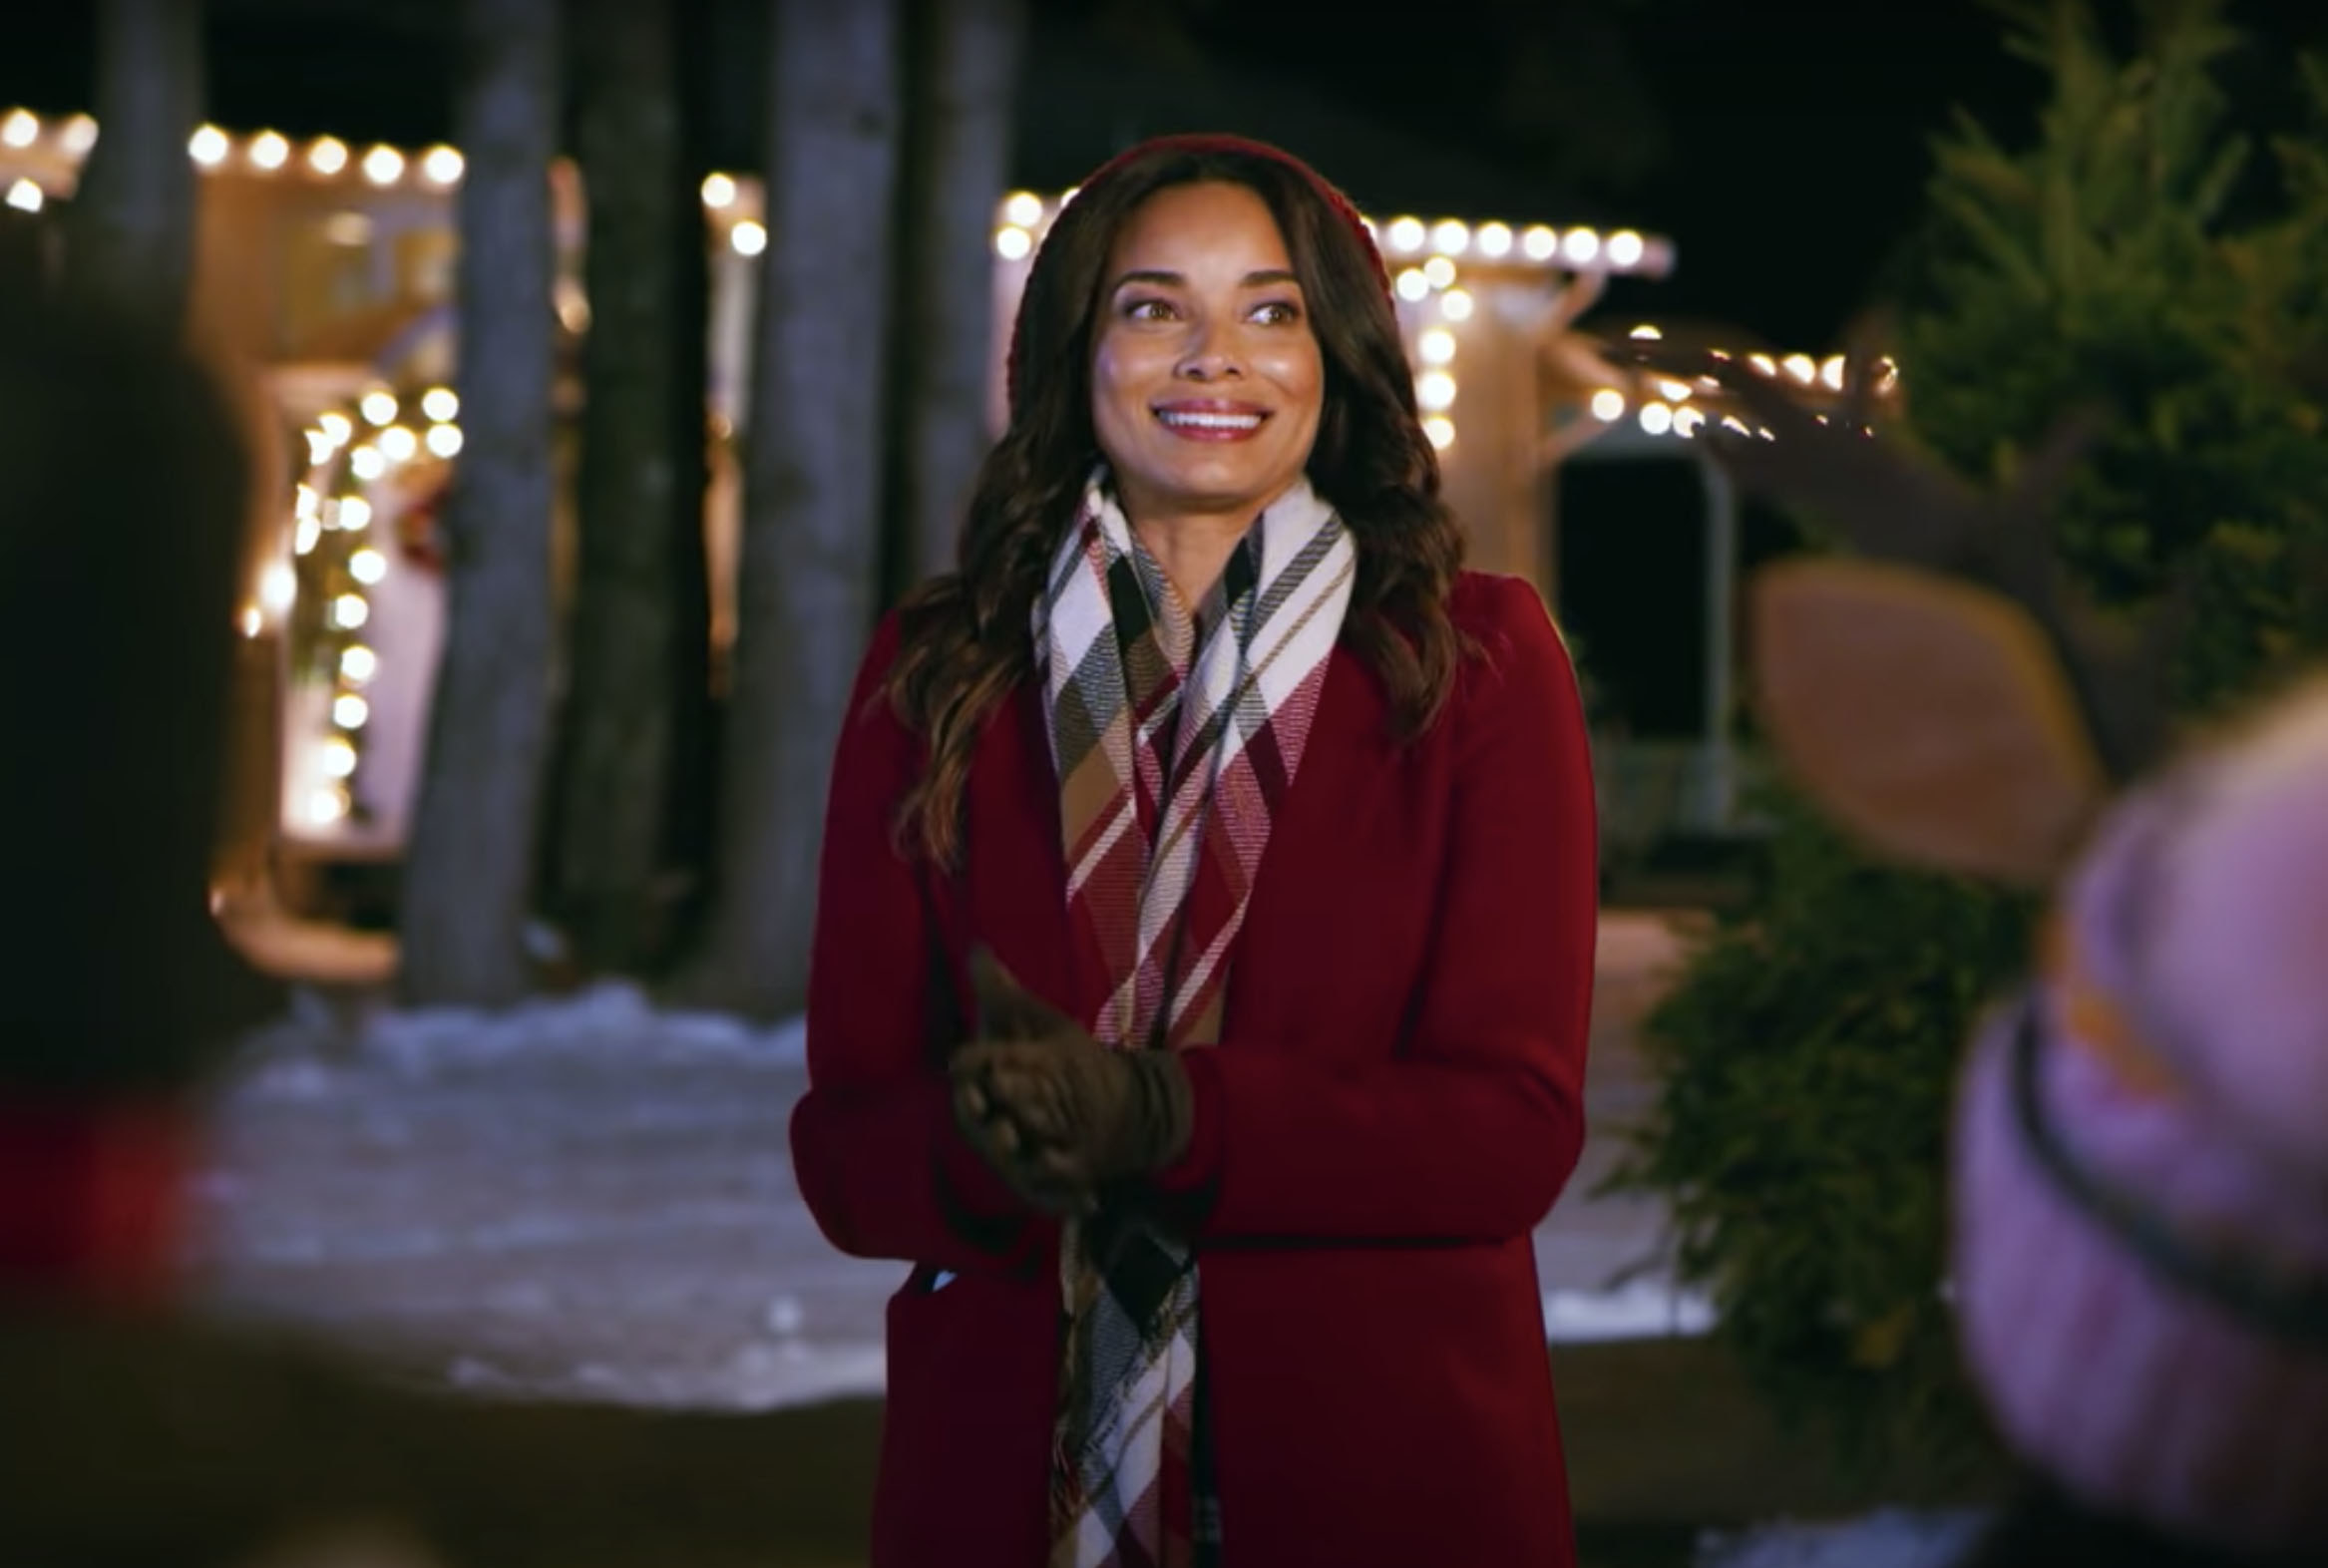 A woman dressed in festive attire smiles in a front yard